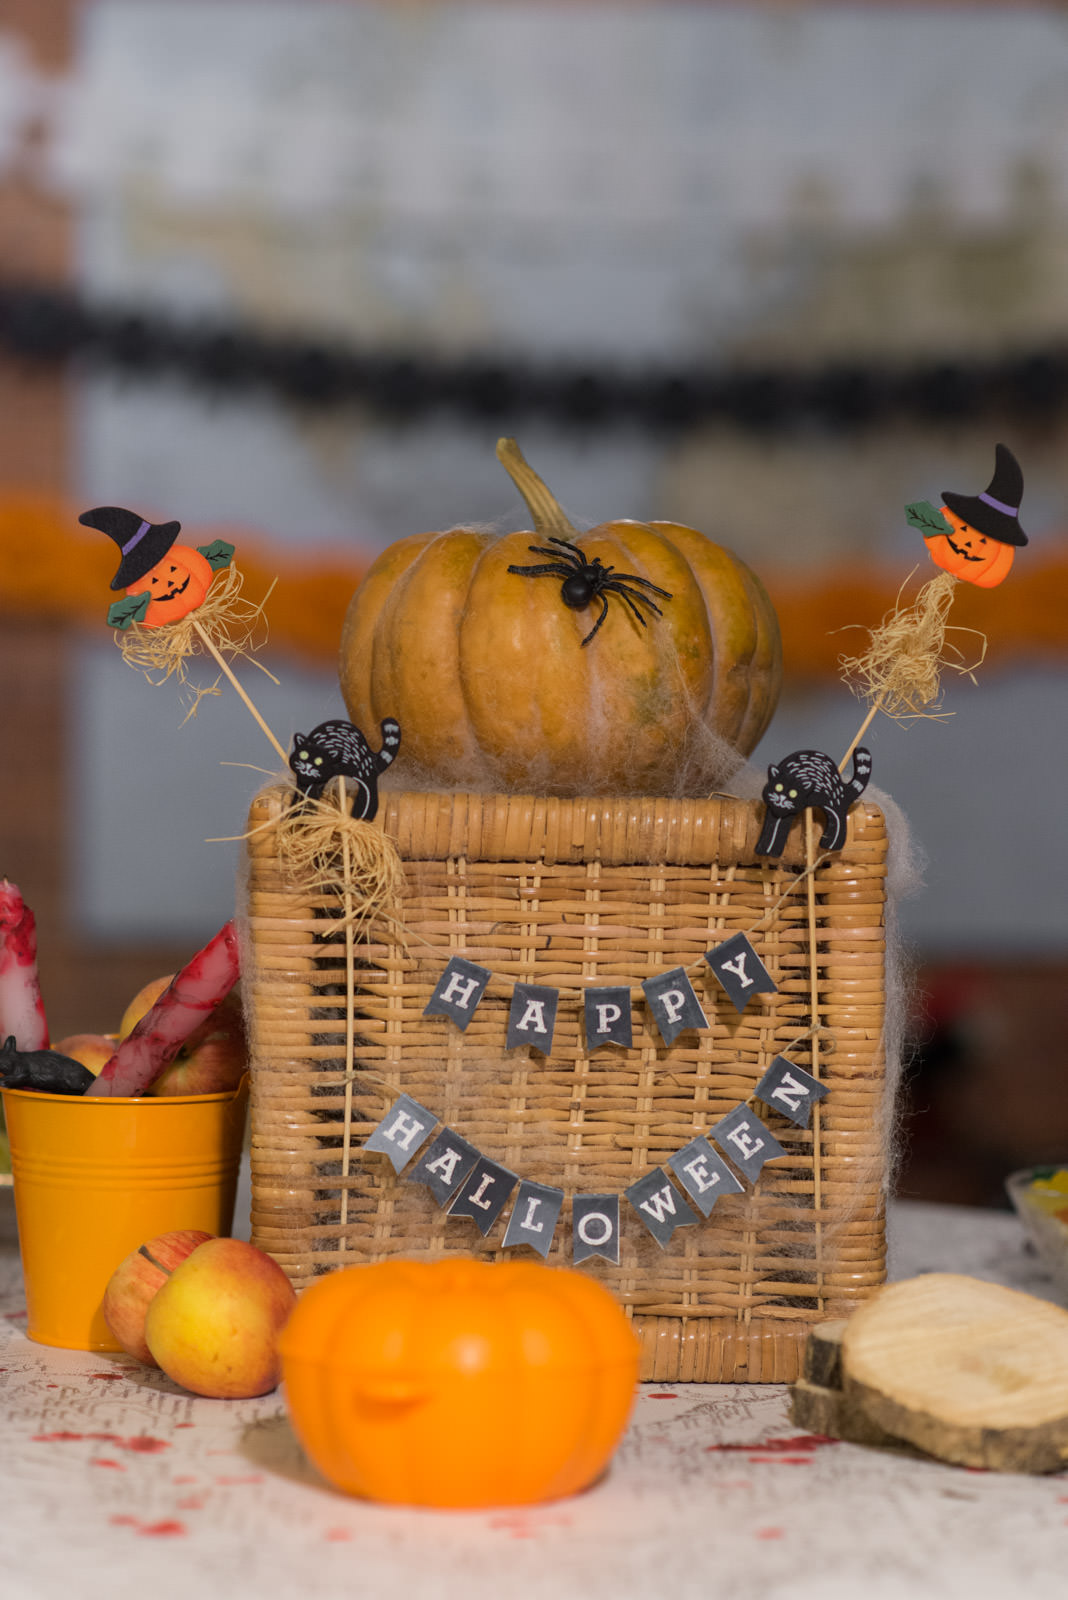 Blog-Mode-And-the-City-Lifestyle-Halloween-2015